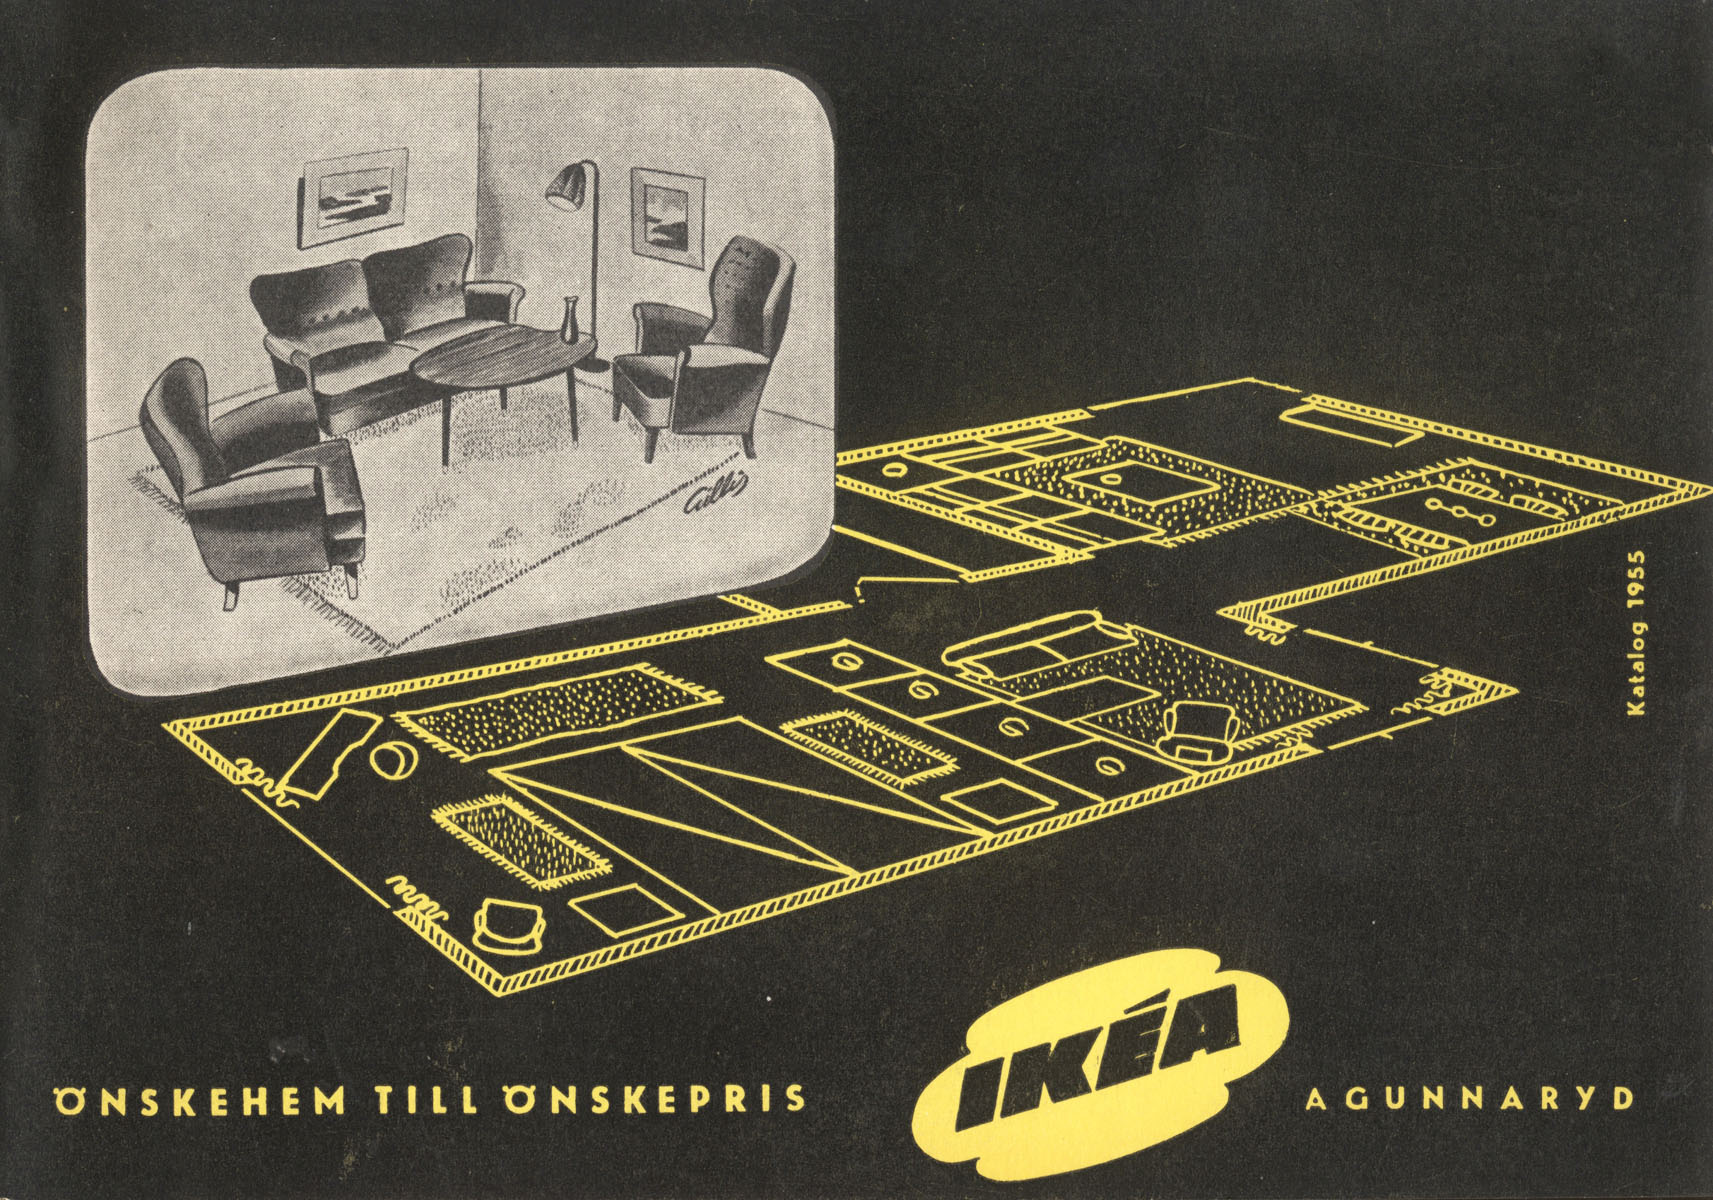 IKEA Catalog Covers from 19512018